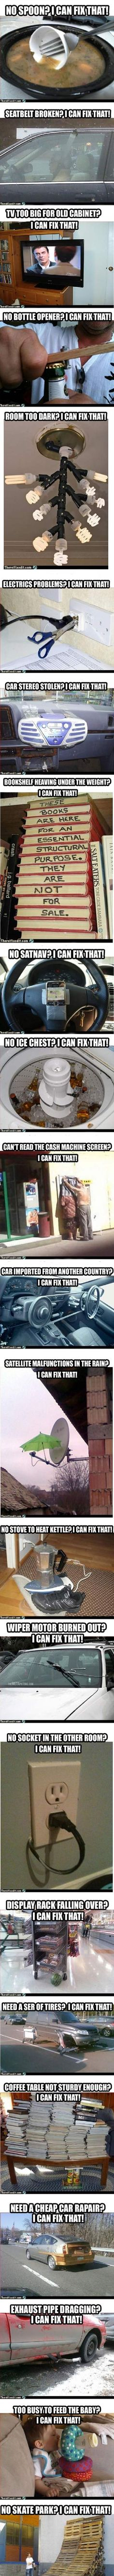 I Can Fix That (compilation) Funny thing is I have seen my family or know of someone who has done some of these!!!